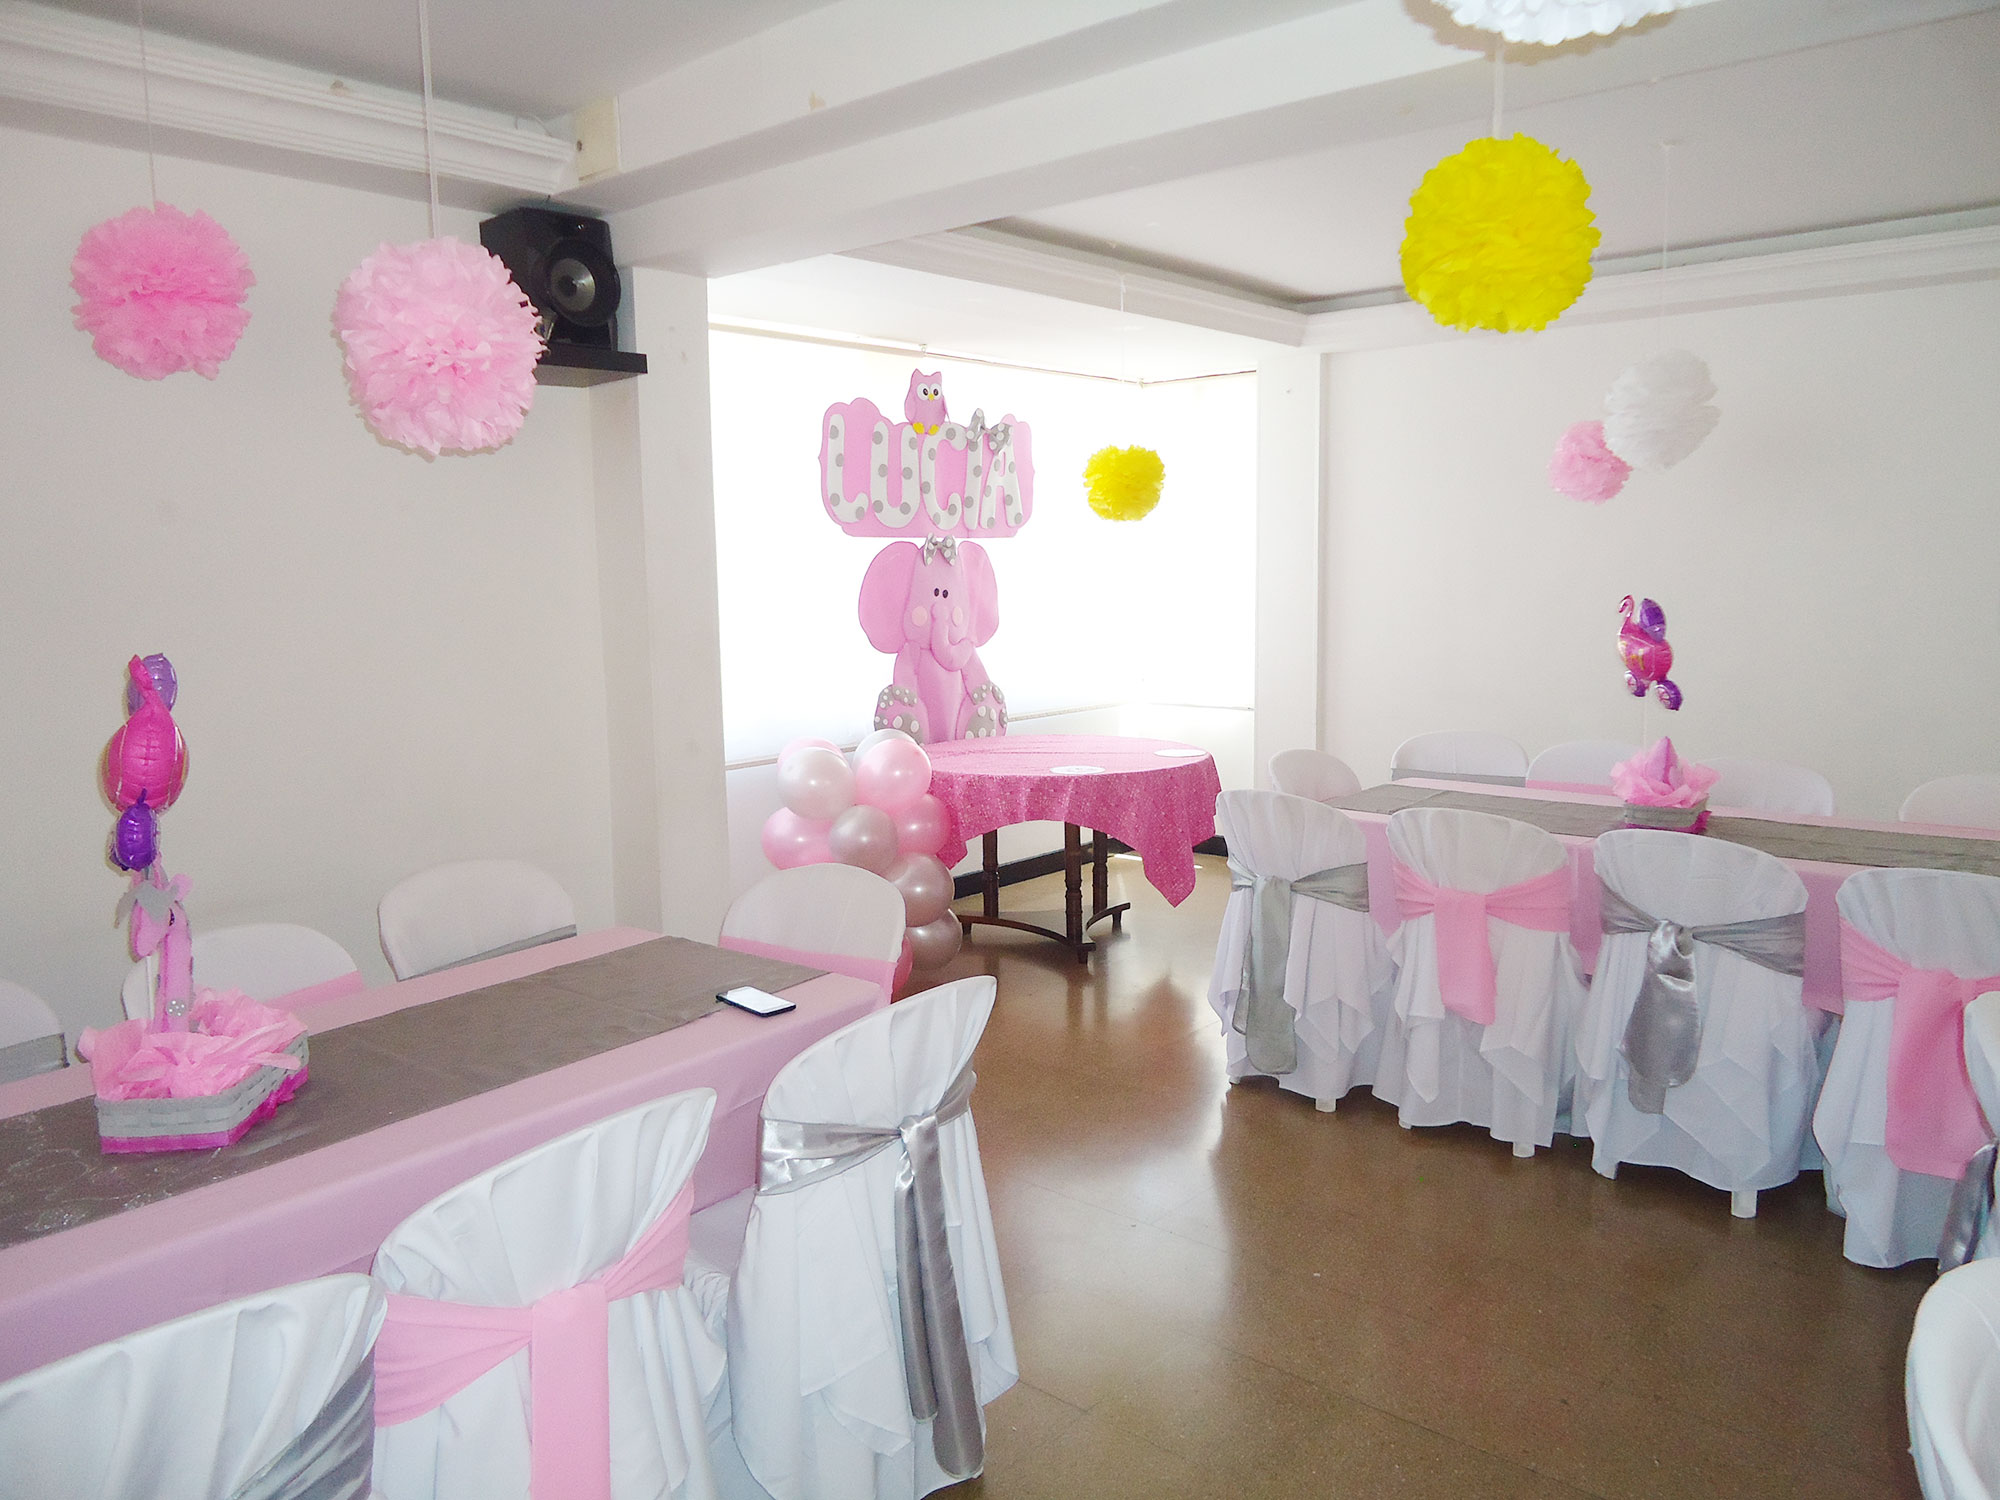 Decoraci n baby shower para ni a decoraciones tematicas for Decoracion baby shower nina